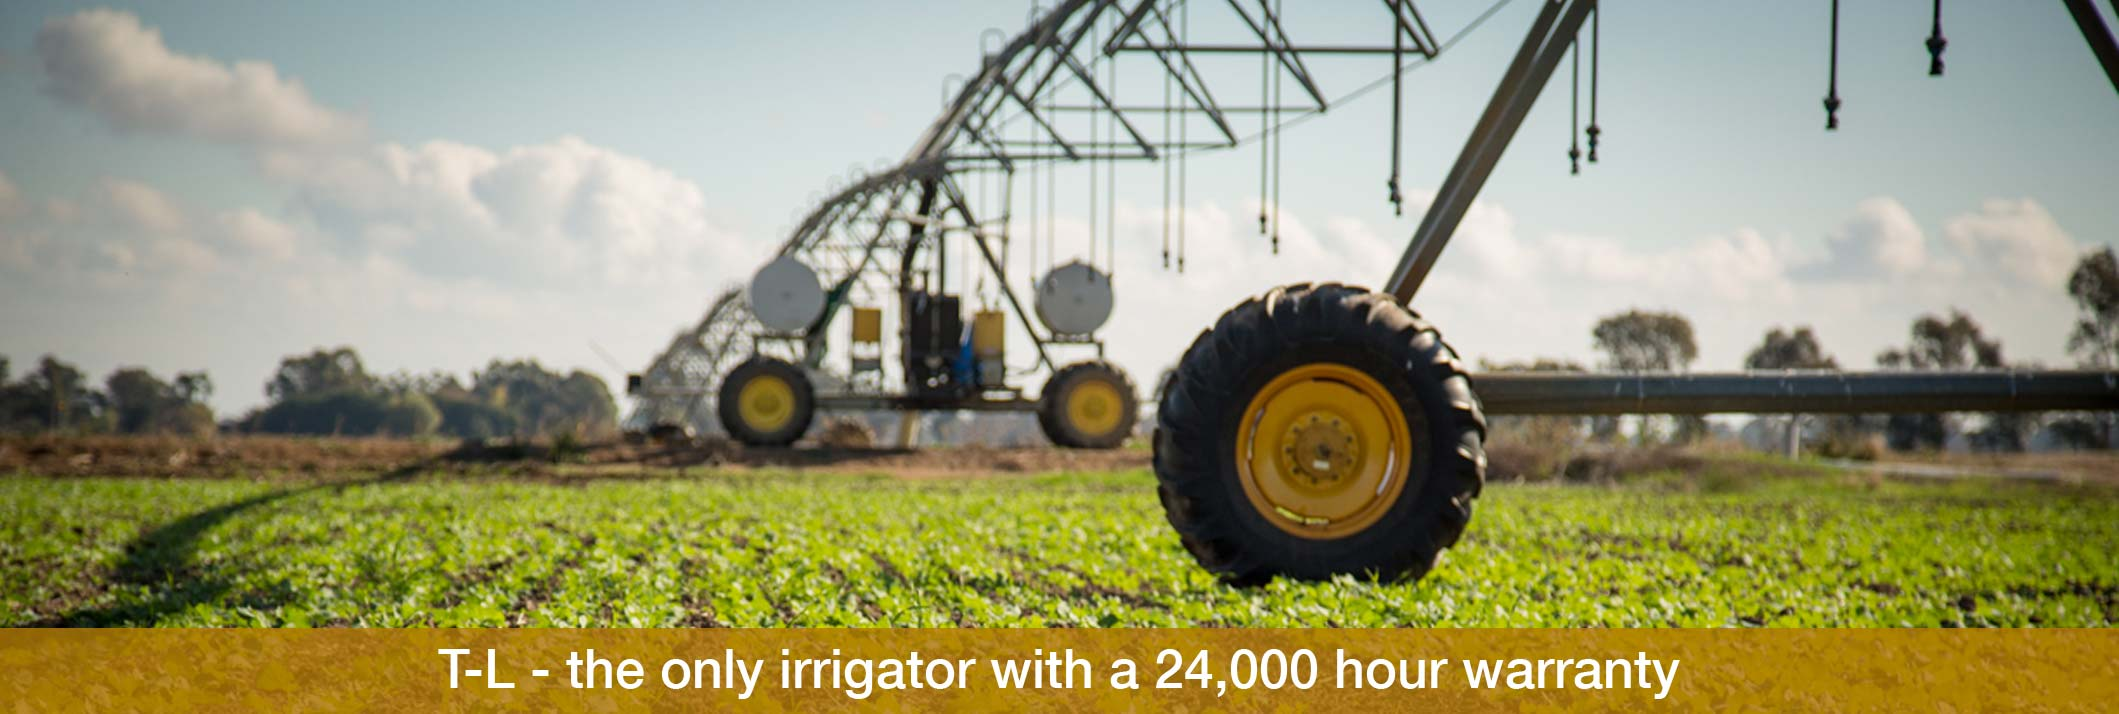 Eagle i farm machinery T-L – the only irrigator with a 24